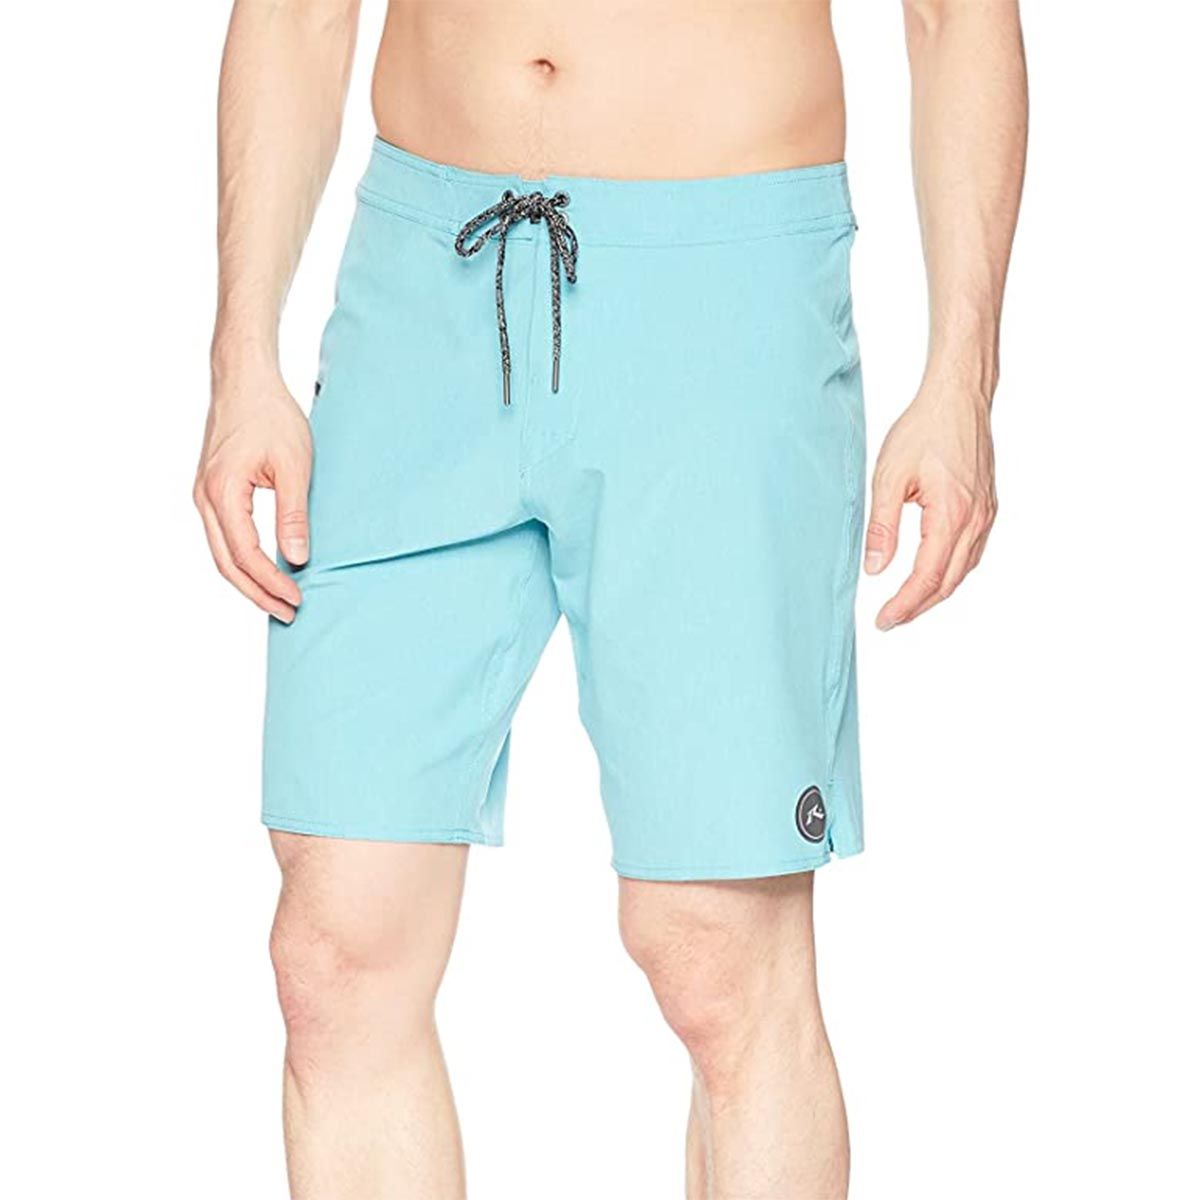 Rusty Marled 2 Men's Boardshort Shorts - Maui Blue